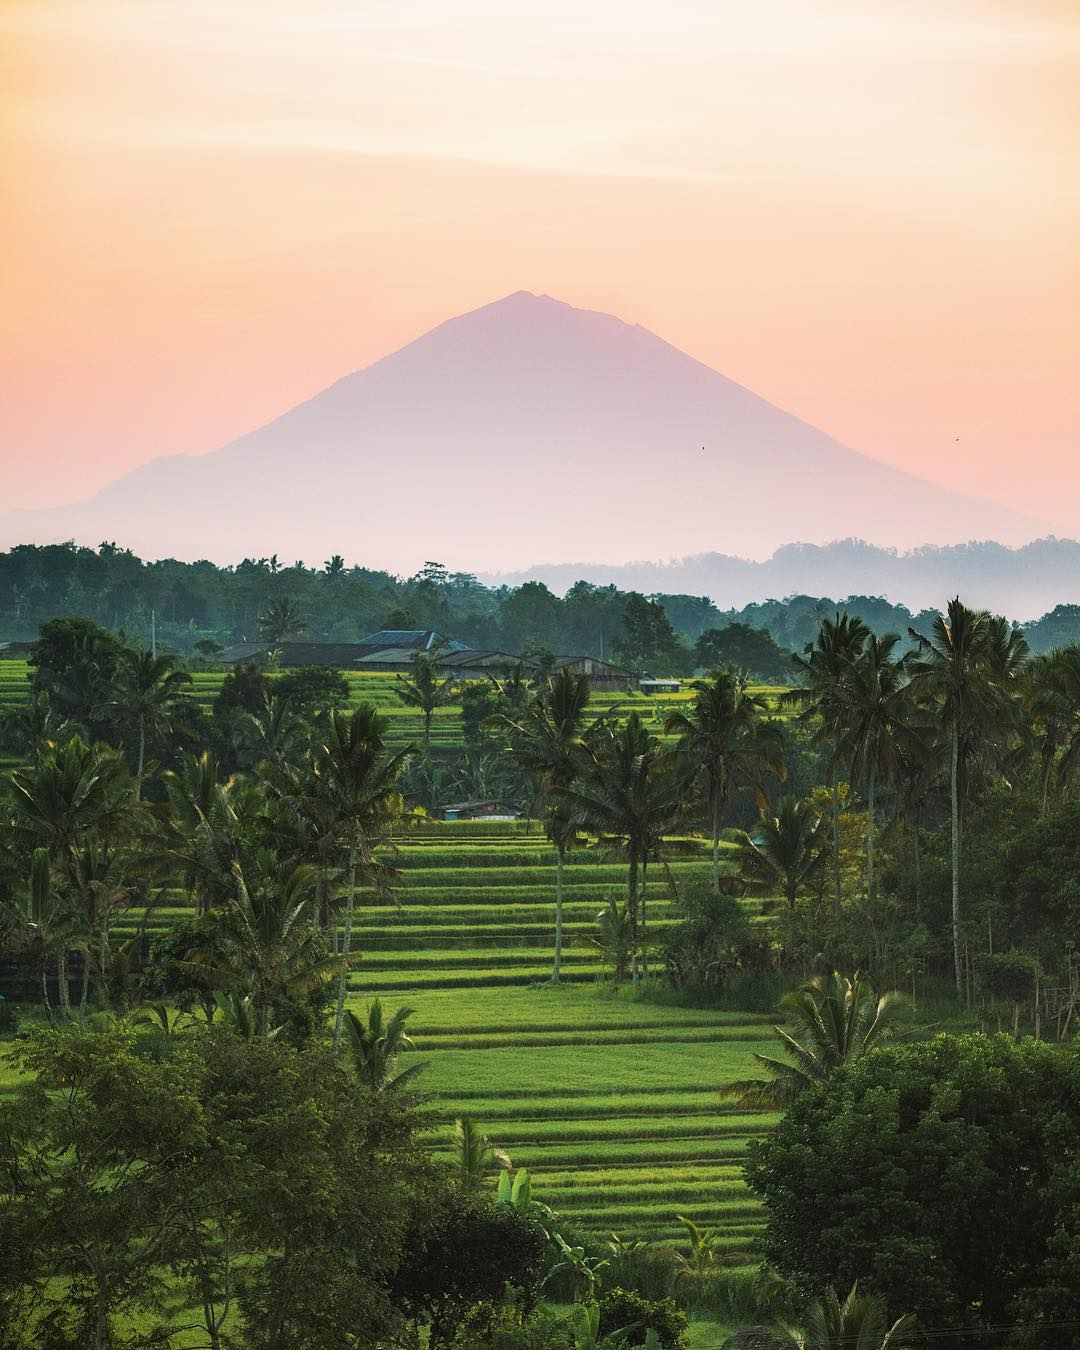 rice terrace with palm trees and a mountain